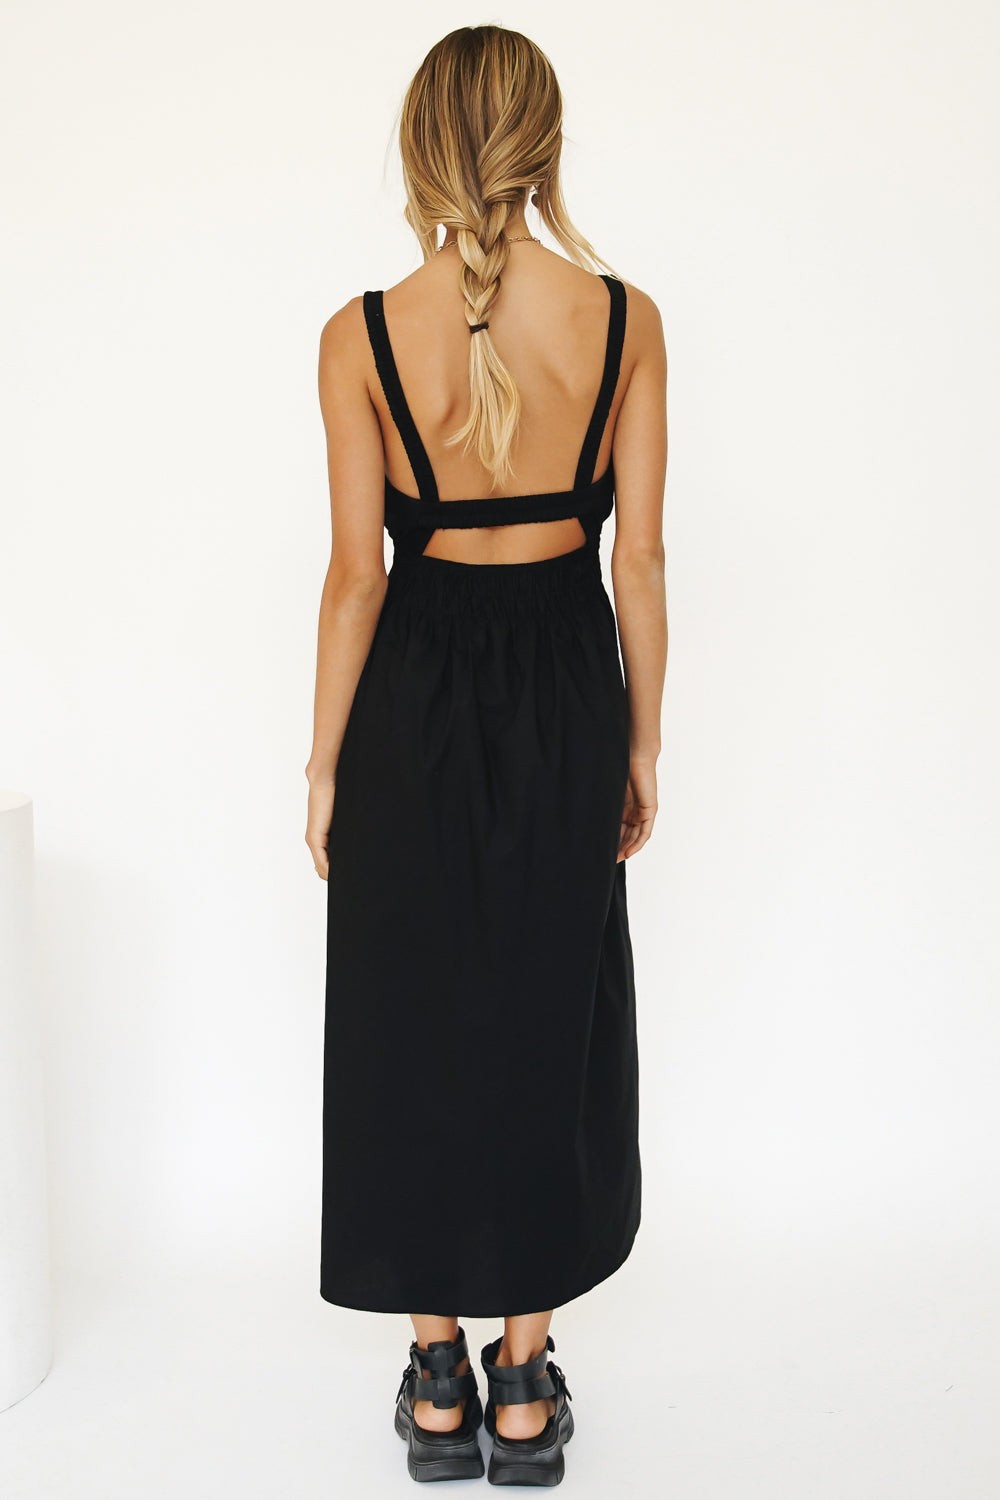 Parisian Days Open Back Midi Dress // Black